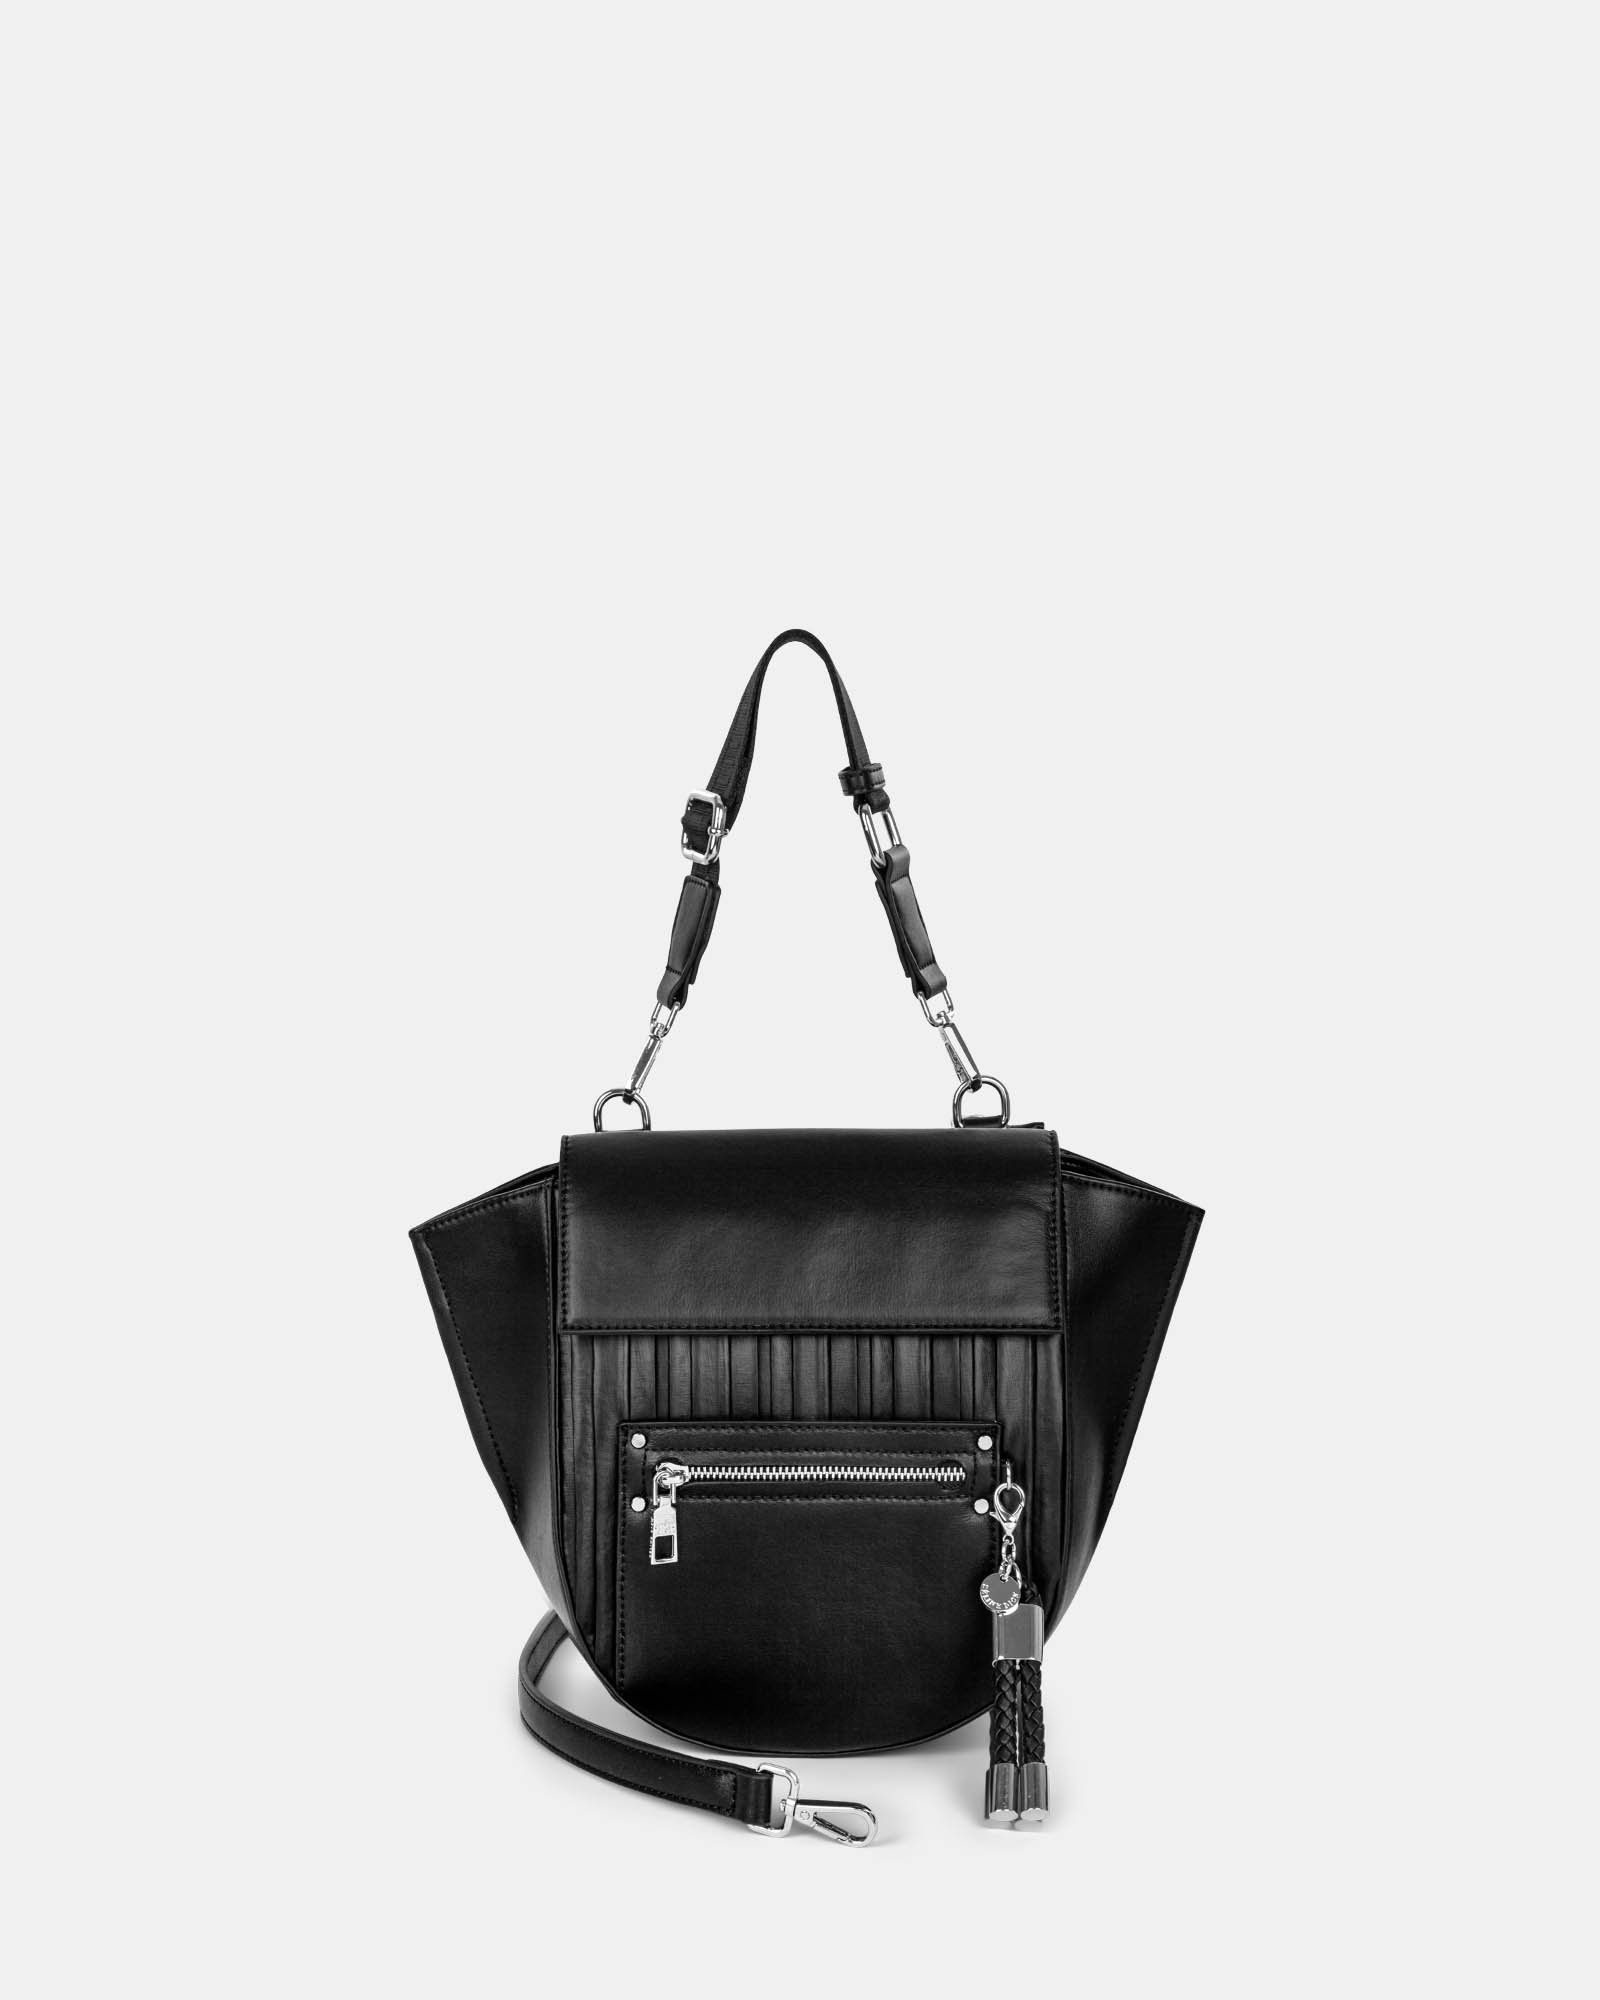 Largo - Handle bag with Adjustable and removable - Black - Céline Dion - Zoom